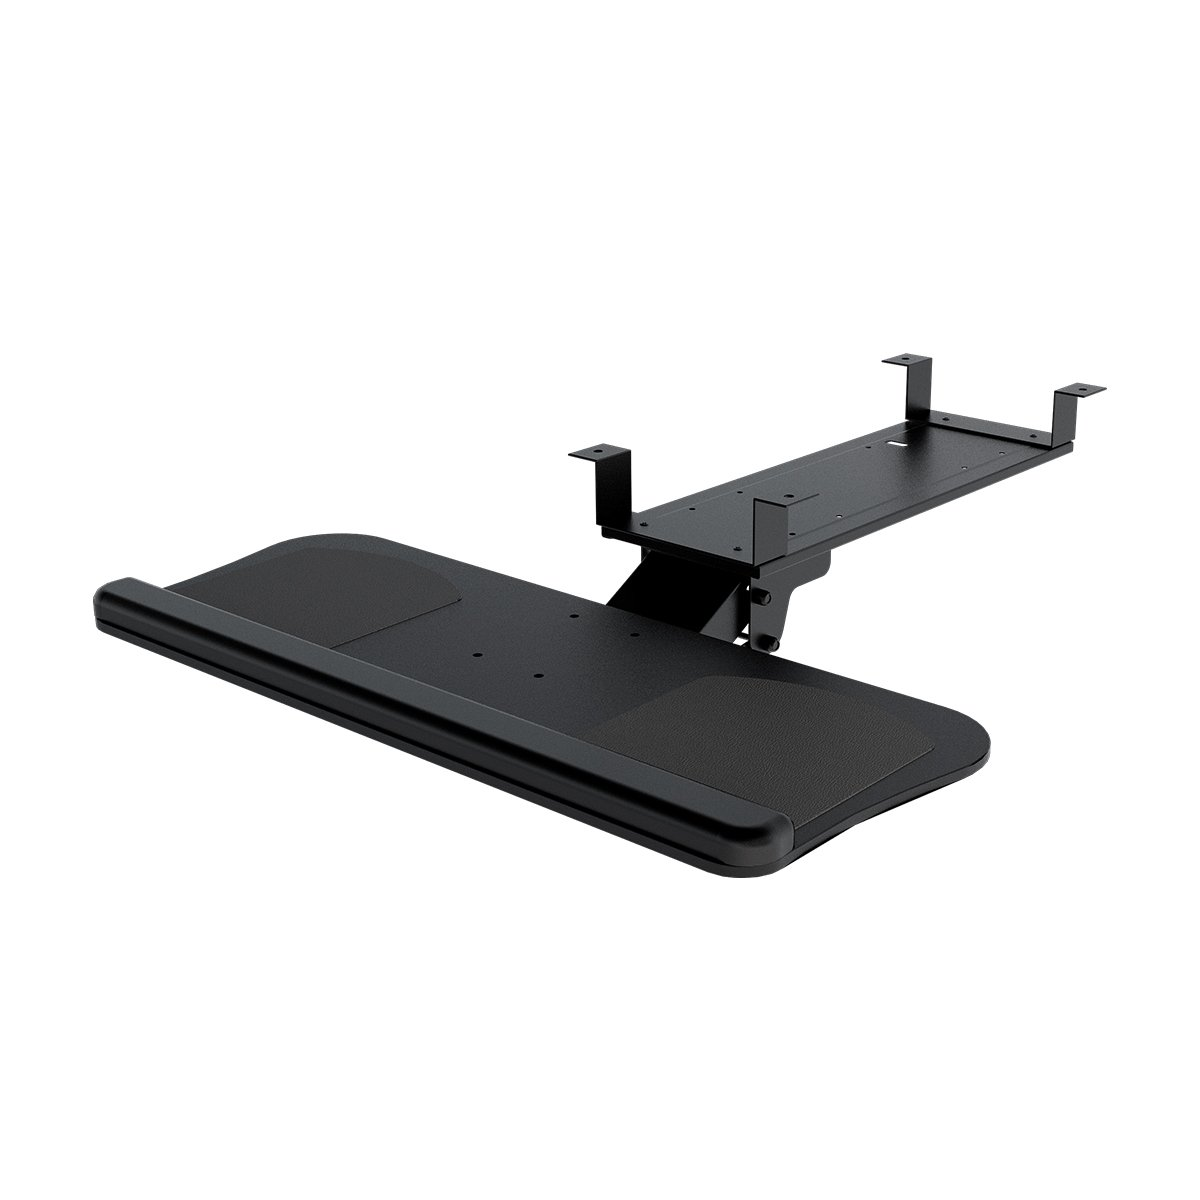 DEVAISE Adjustable Keyboard & Mouse Platform Tray with Gel Wrist Rest Pad and Non-Skid pads by DEVAISE